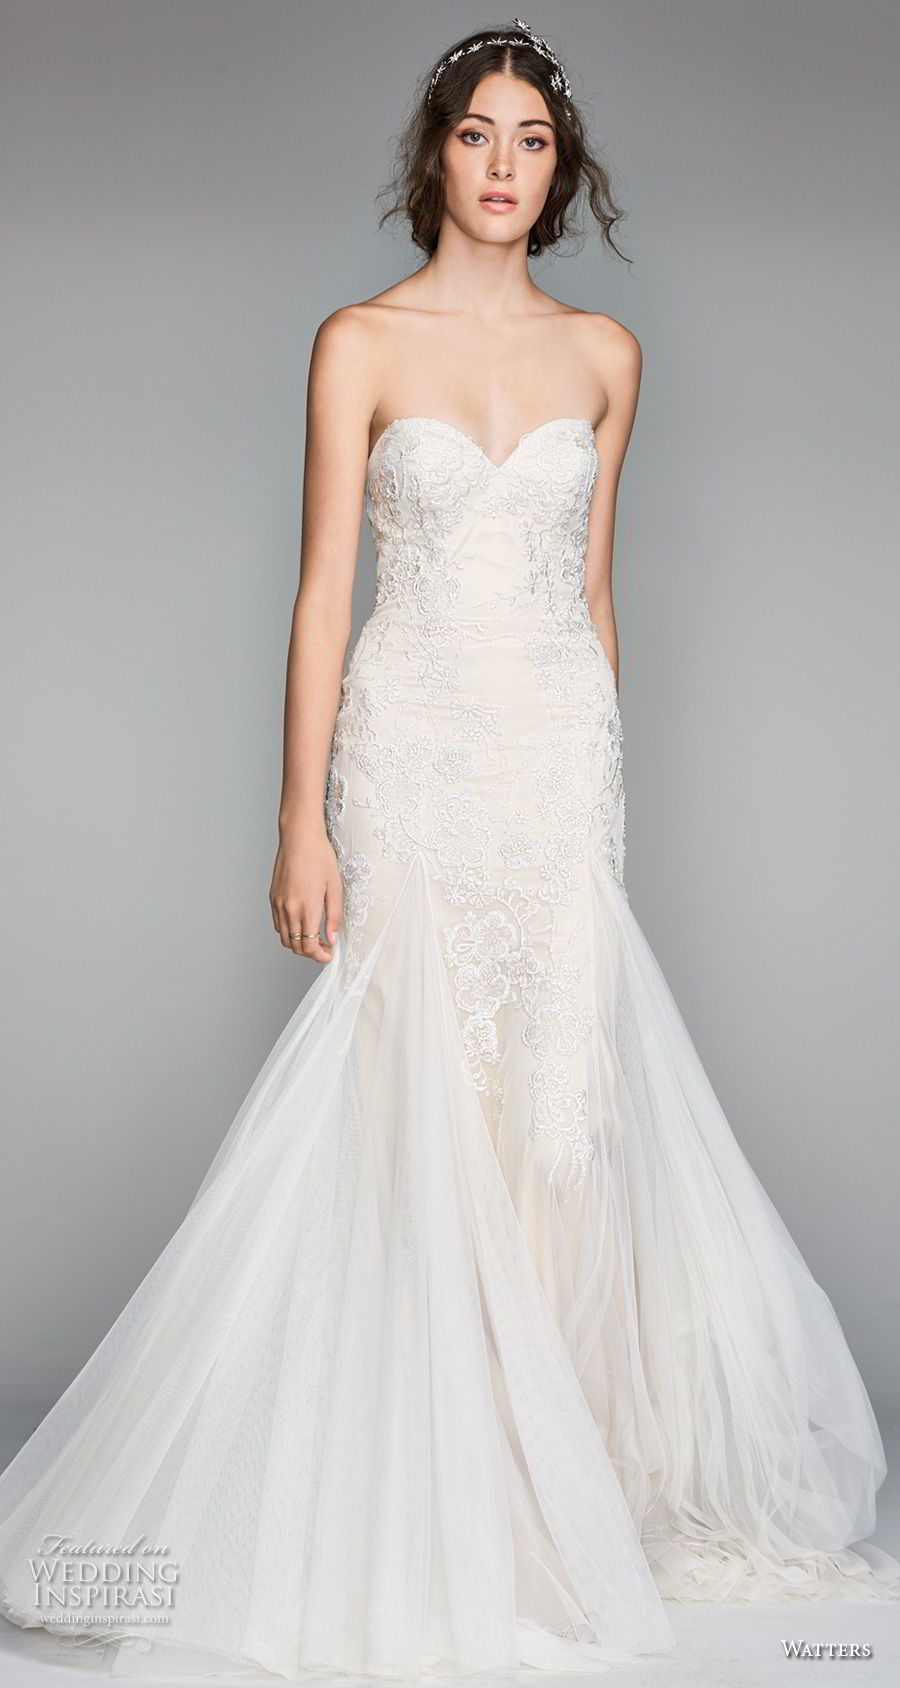 willow by watters spring 2018 strapless sweetheart neckline heavily embellished bodice romantic mermaid wedding dress sweep train (16) mv